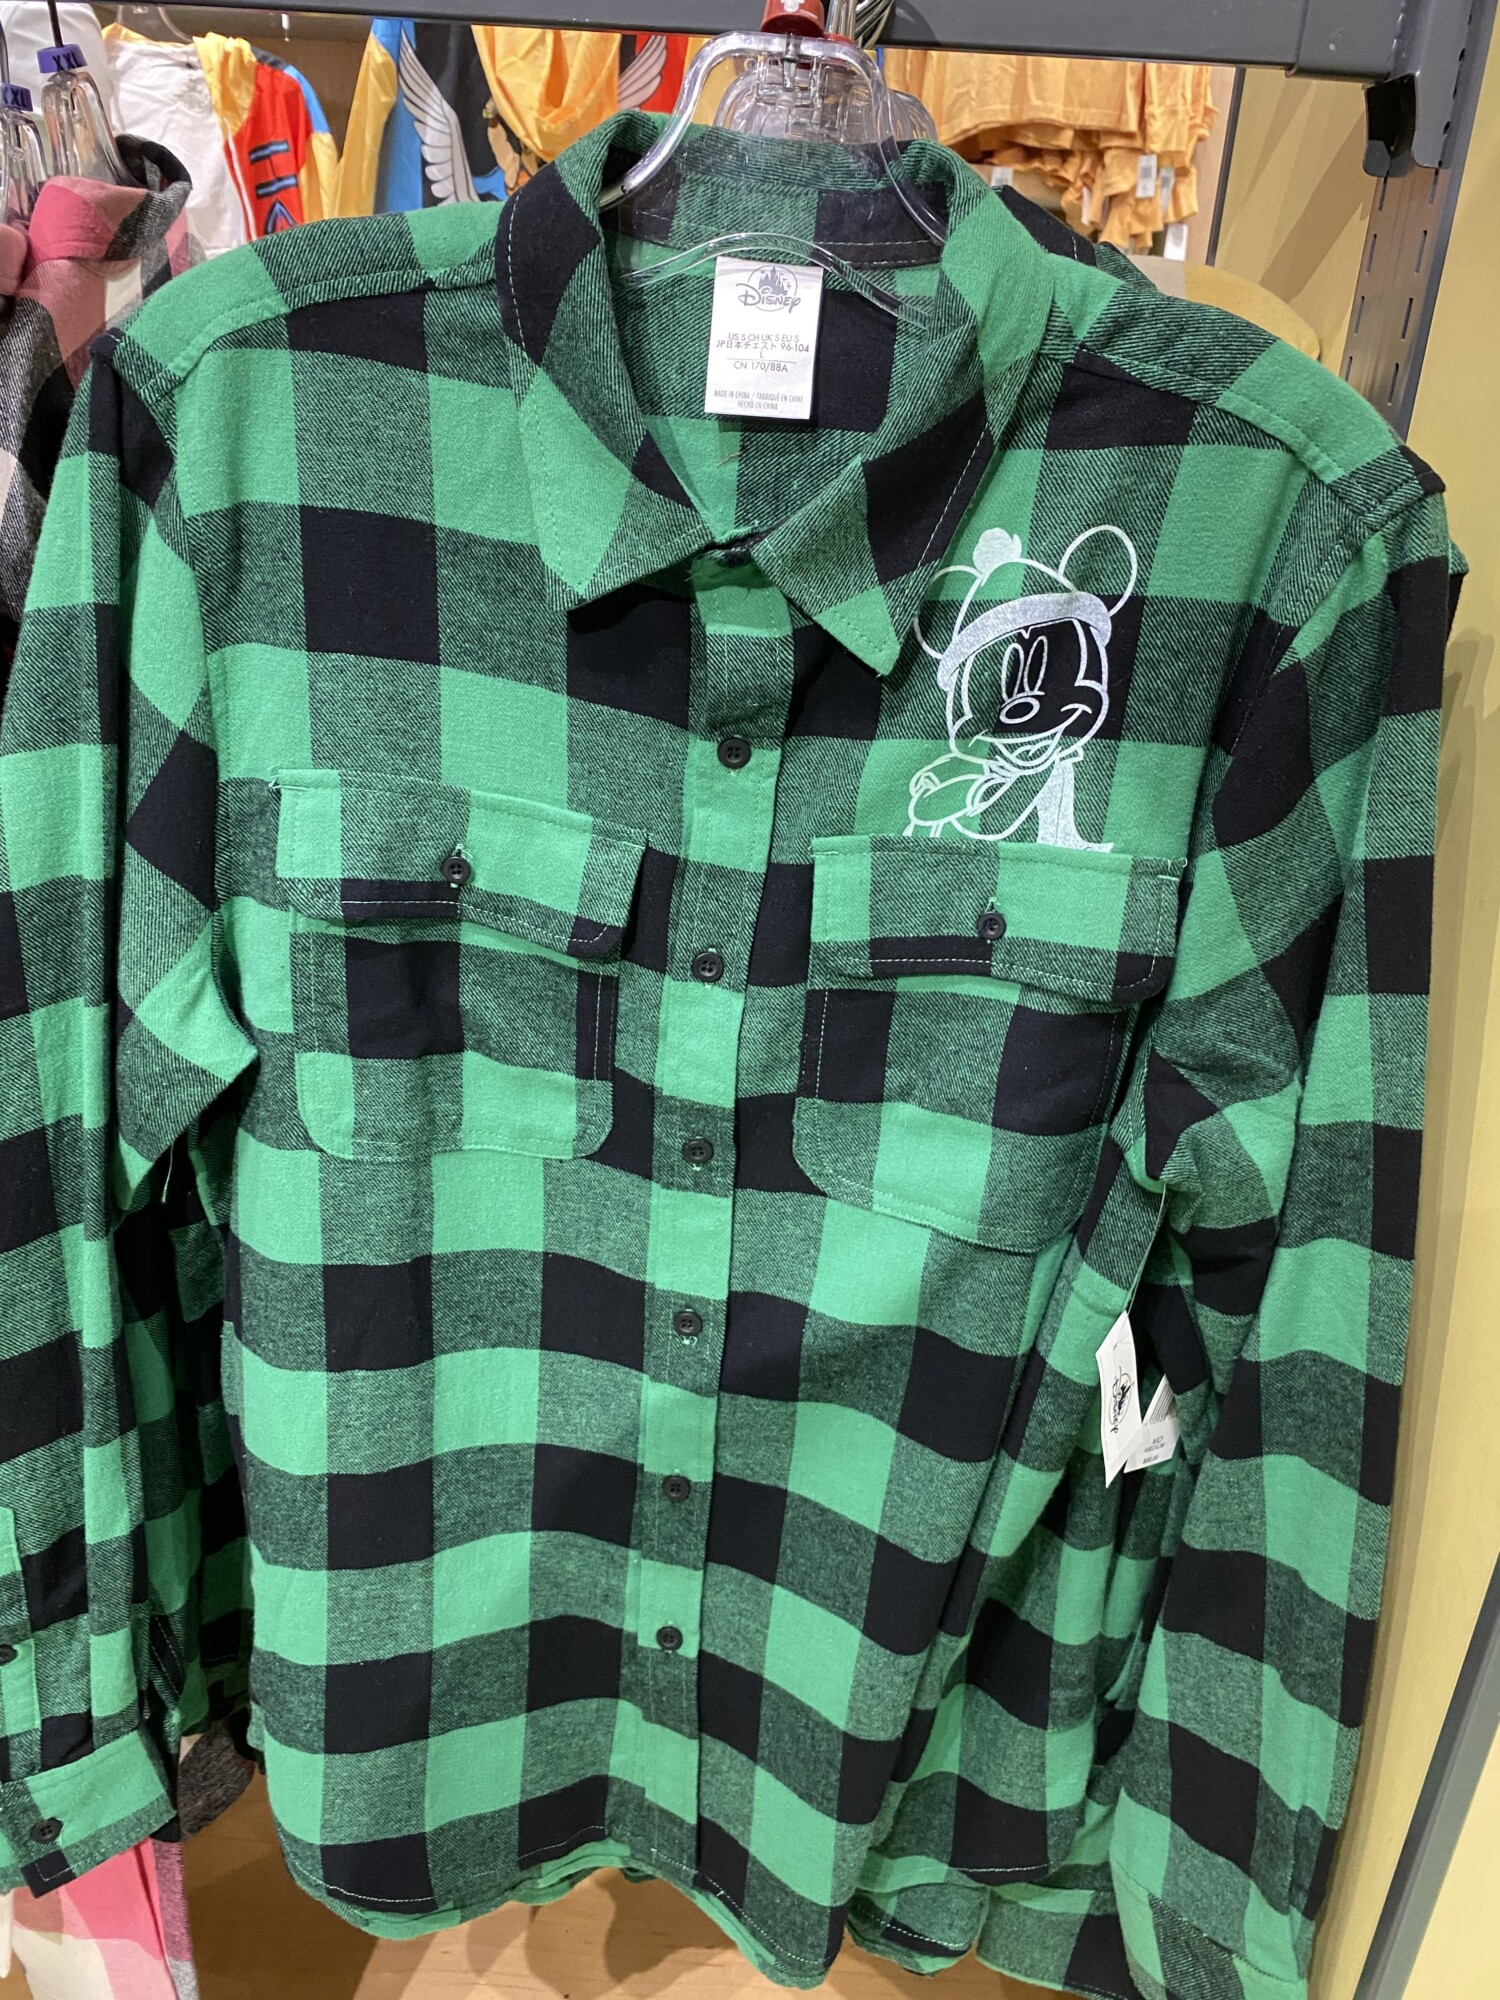 Mad for Plaid! More Fun Merch at Disney Springs 8